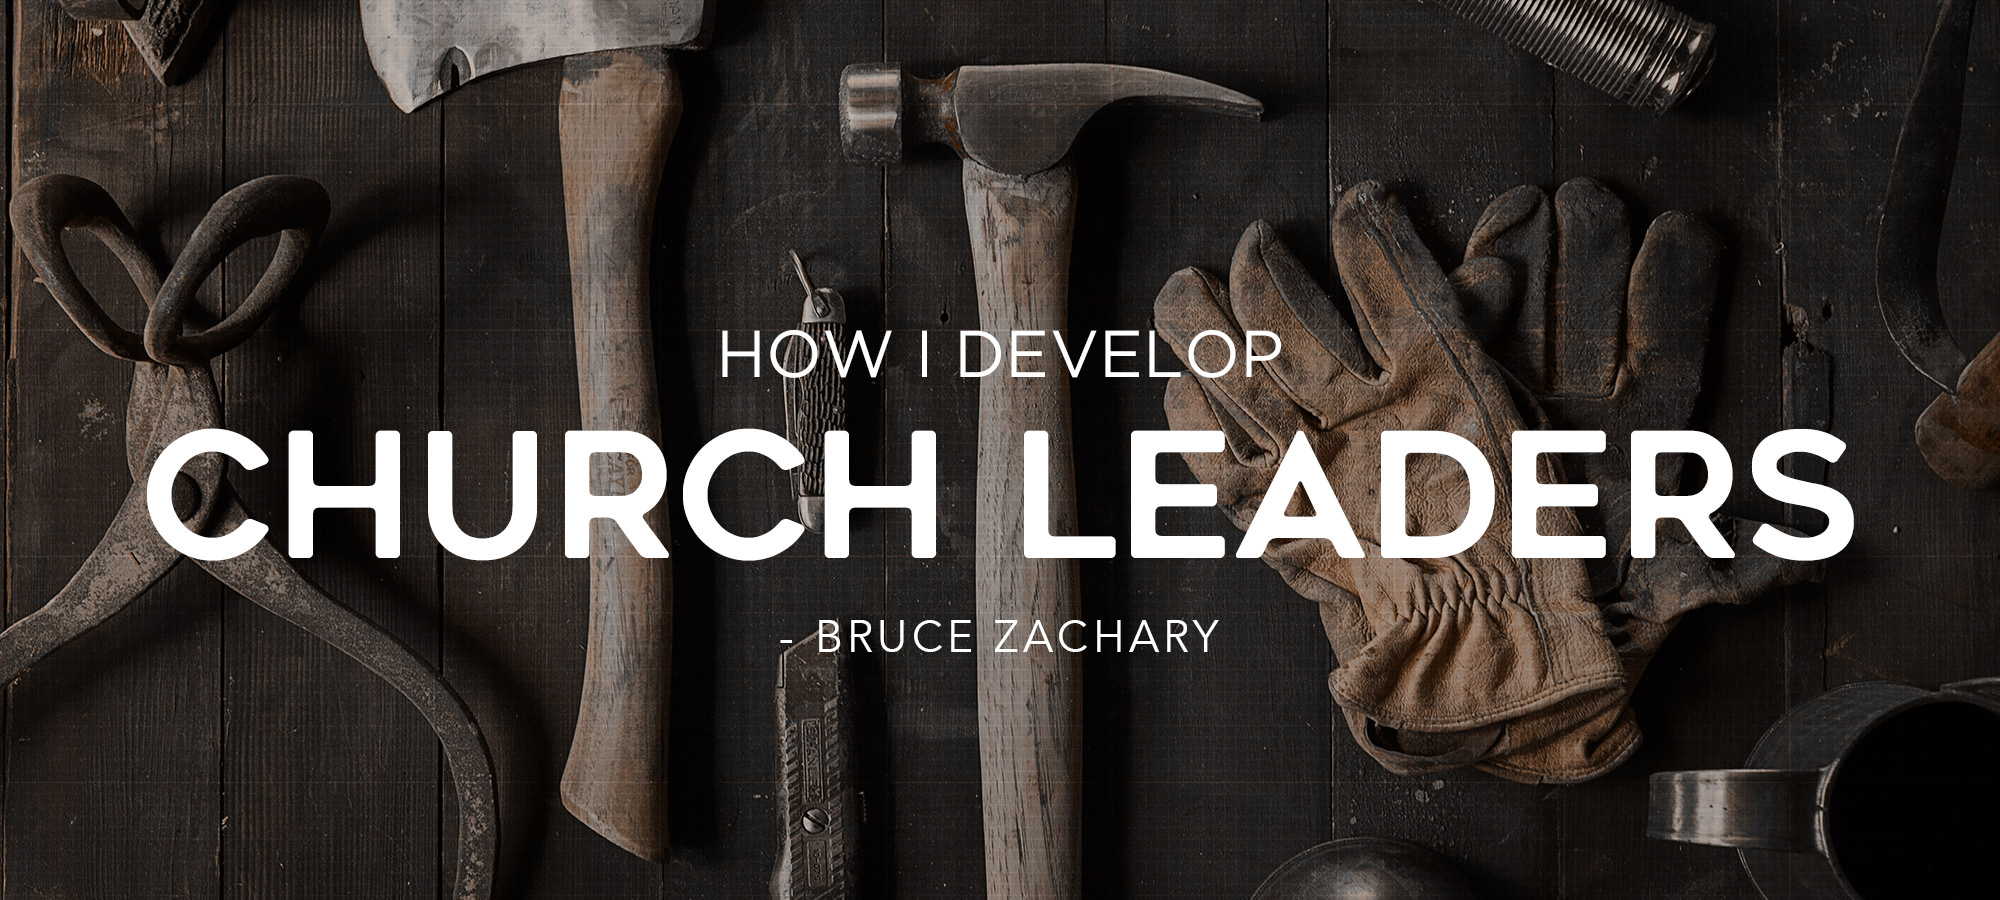 How I Develop Church Leaders